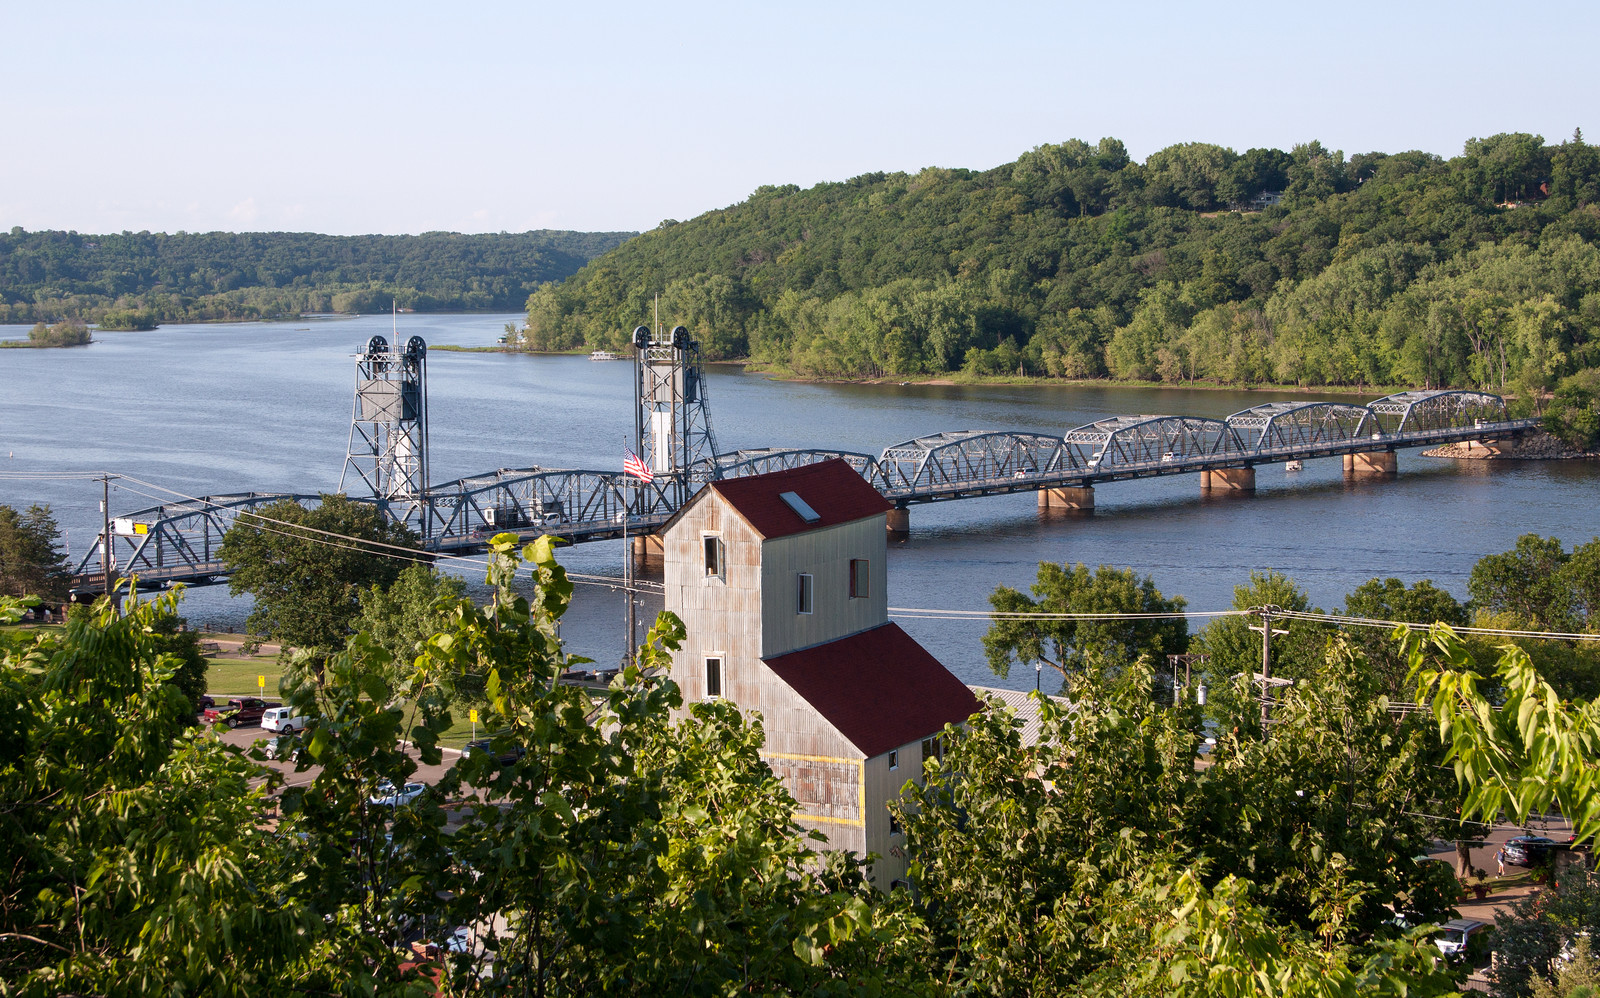 Photo from above the st. croix river with the lift bridge - green trees lining the river